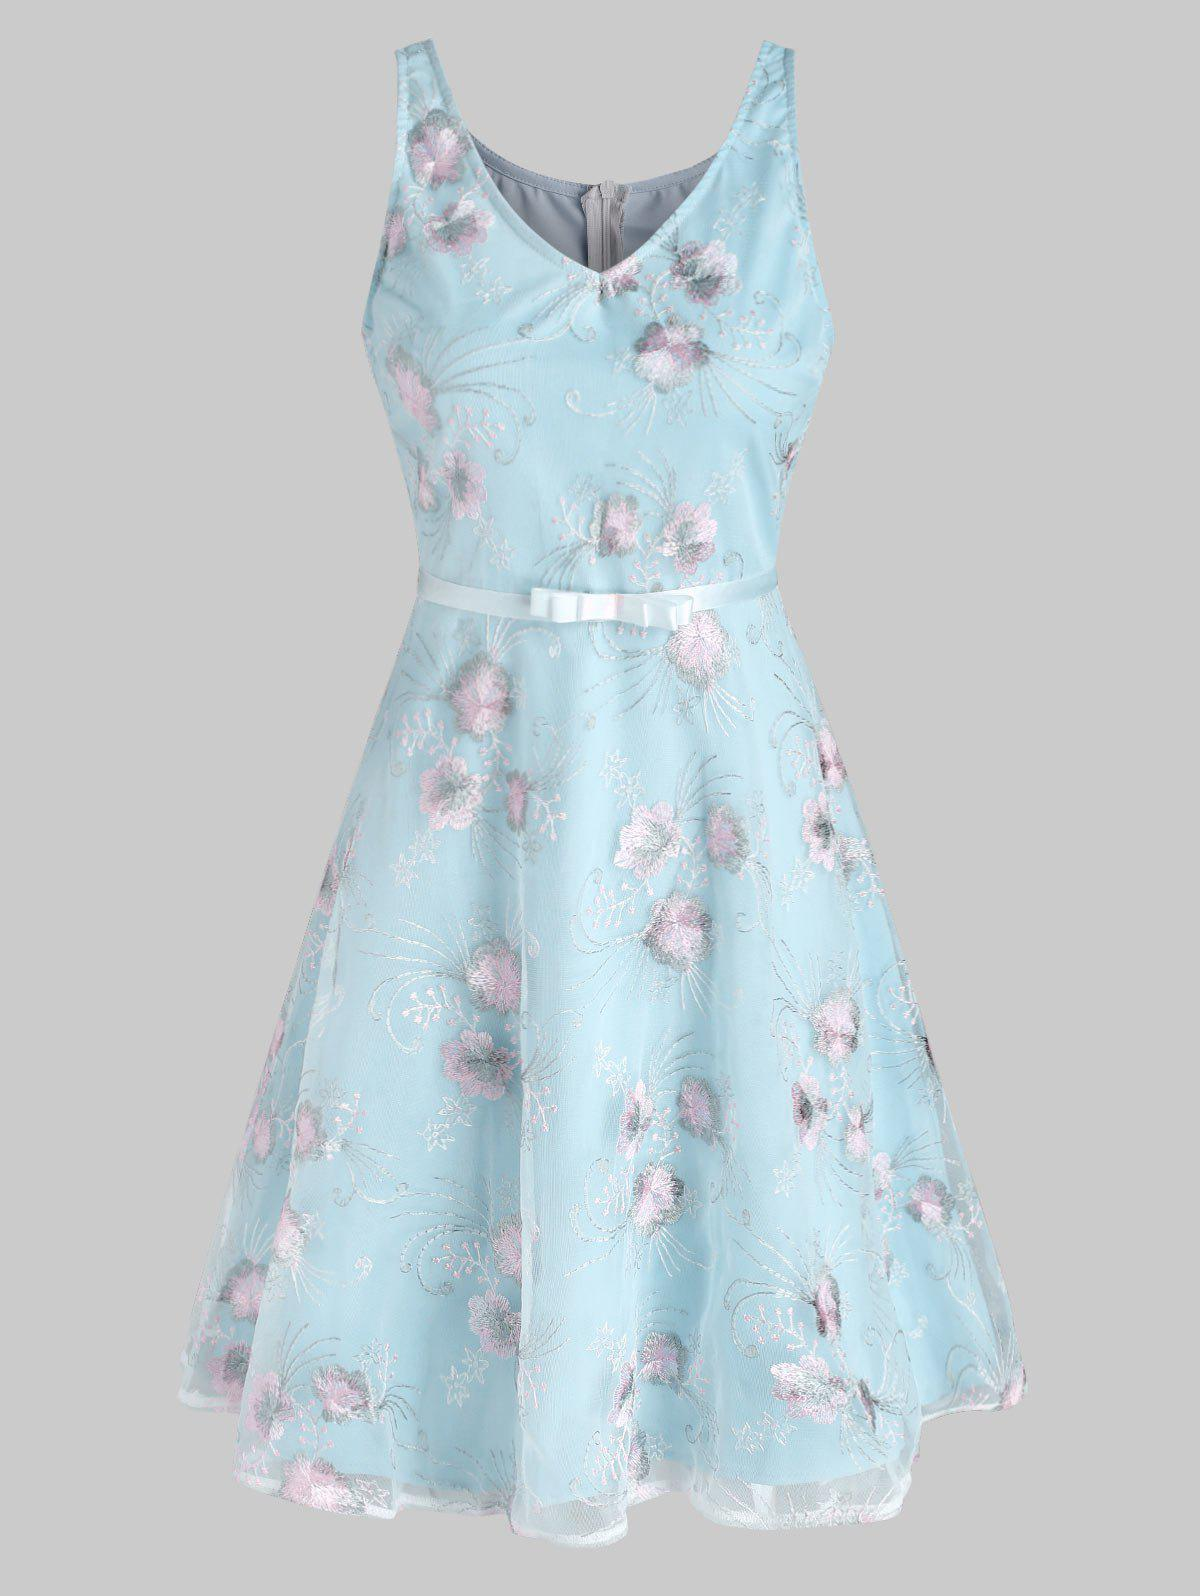 Lace Flower Embroidery Ribbon Belted A Line Dress - LIGHT BLUE S